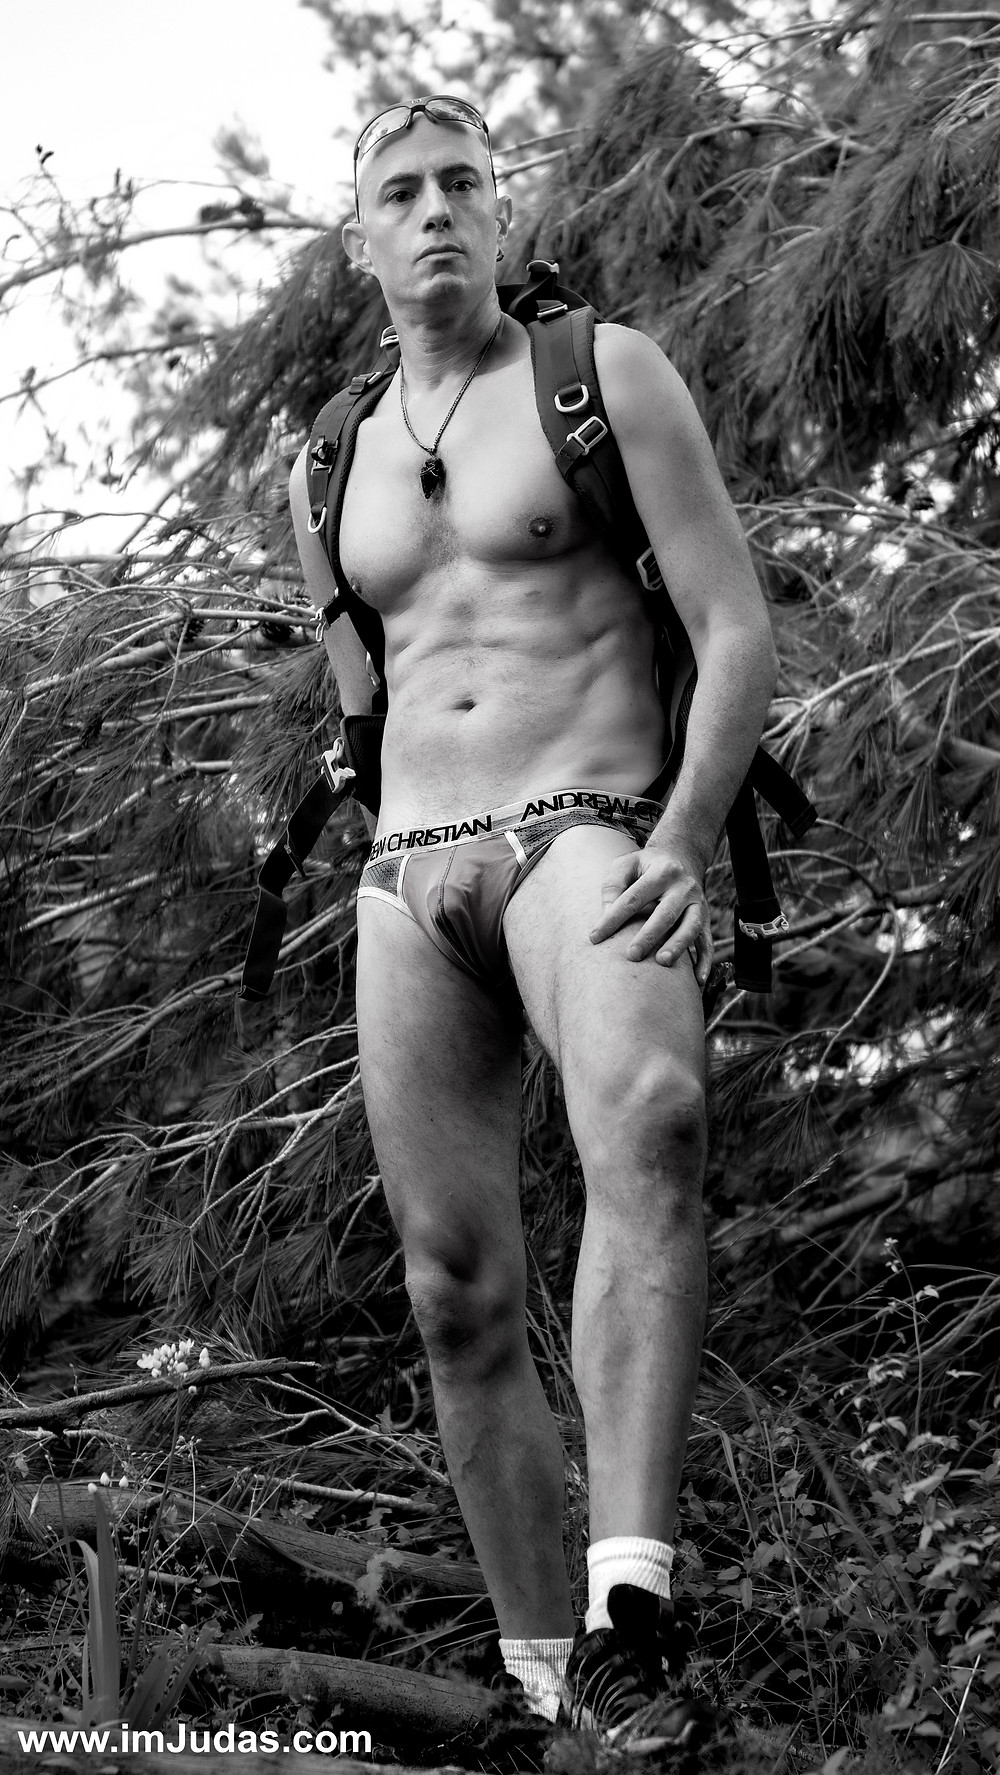 Shirtless in the forest, in my underwear